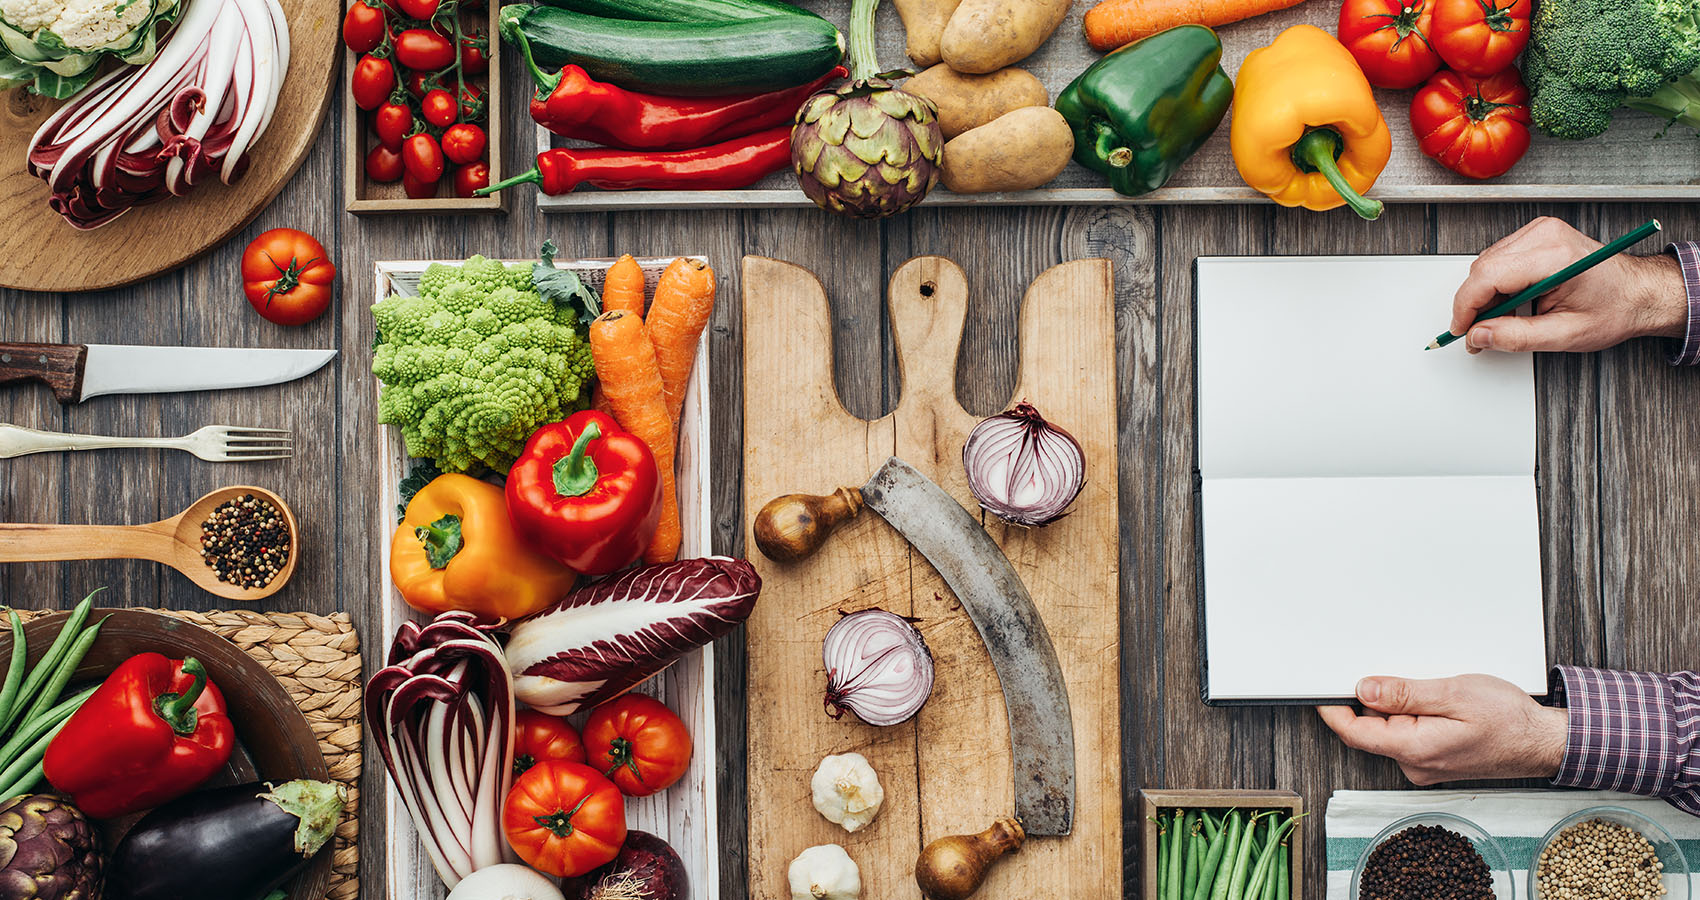 Gentle Nutrition: An Approach That Supports Body Positivity